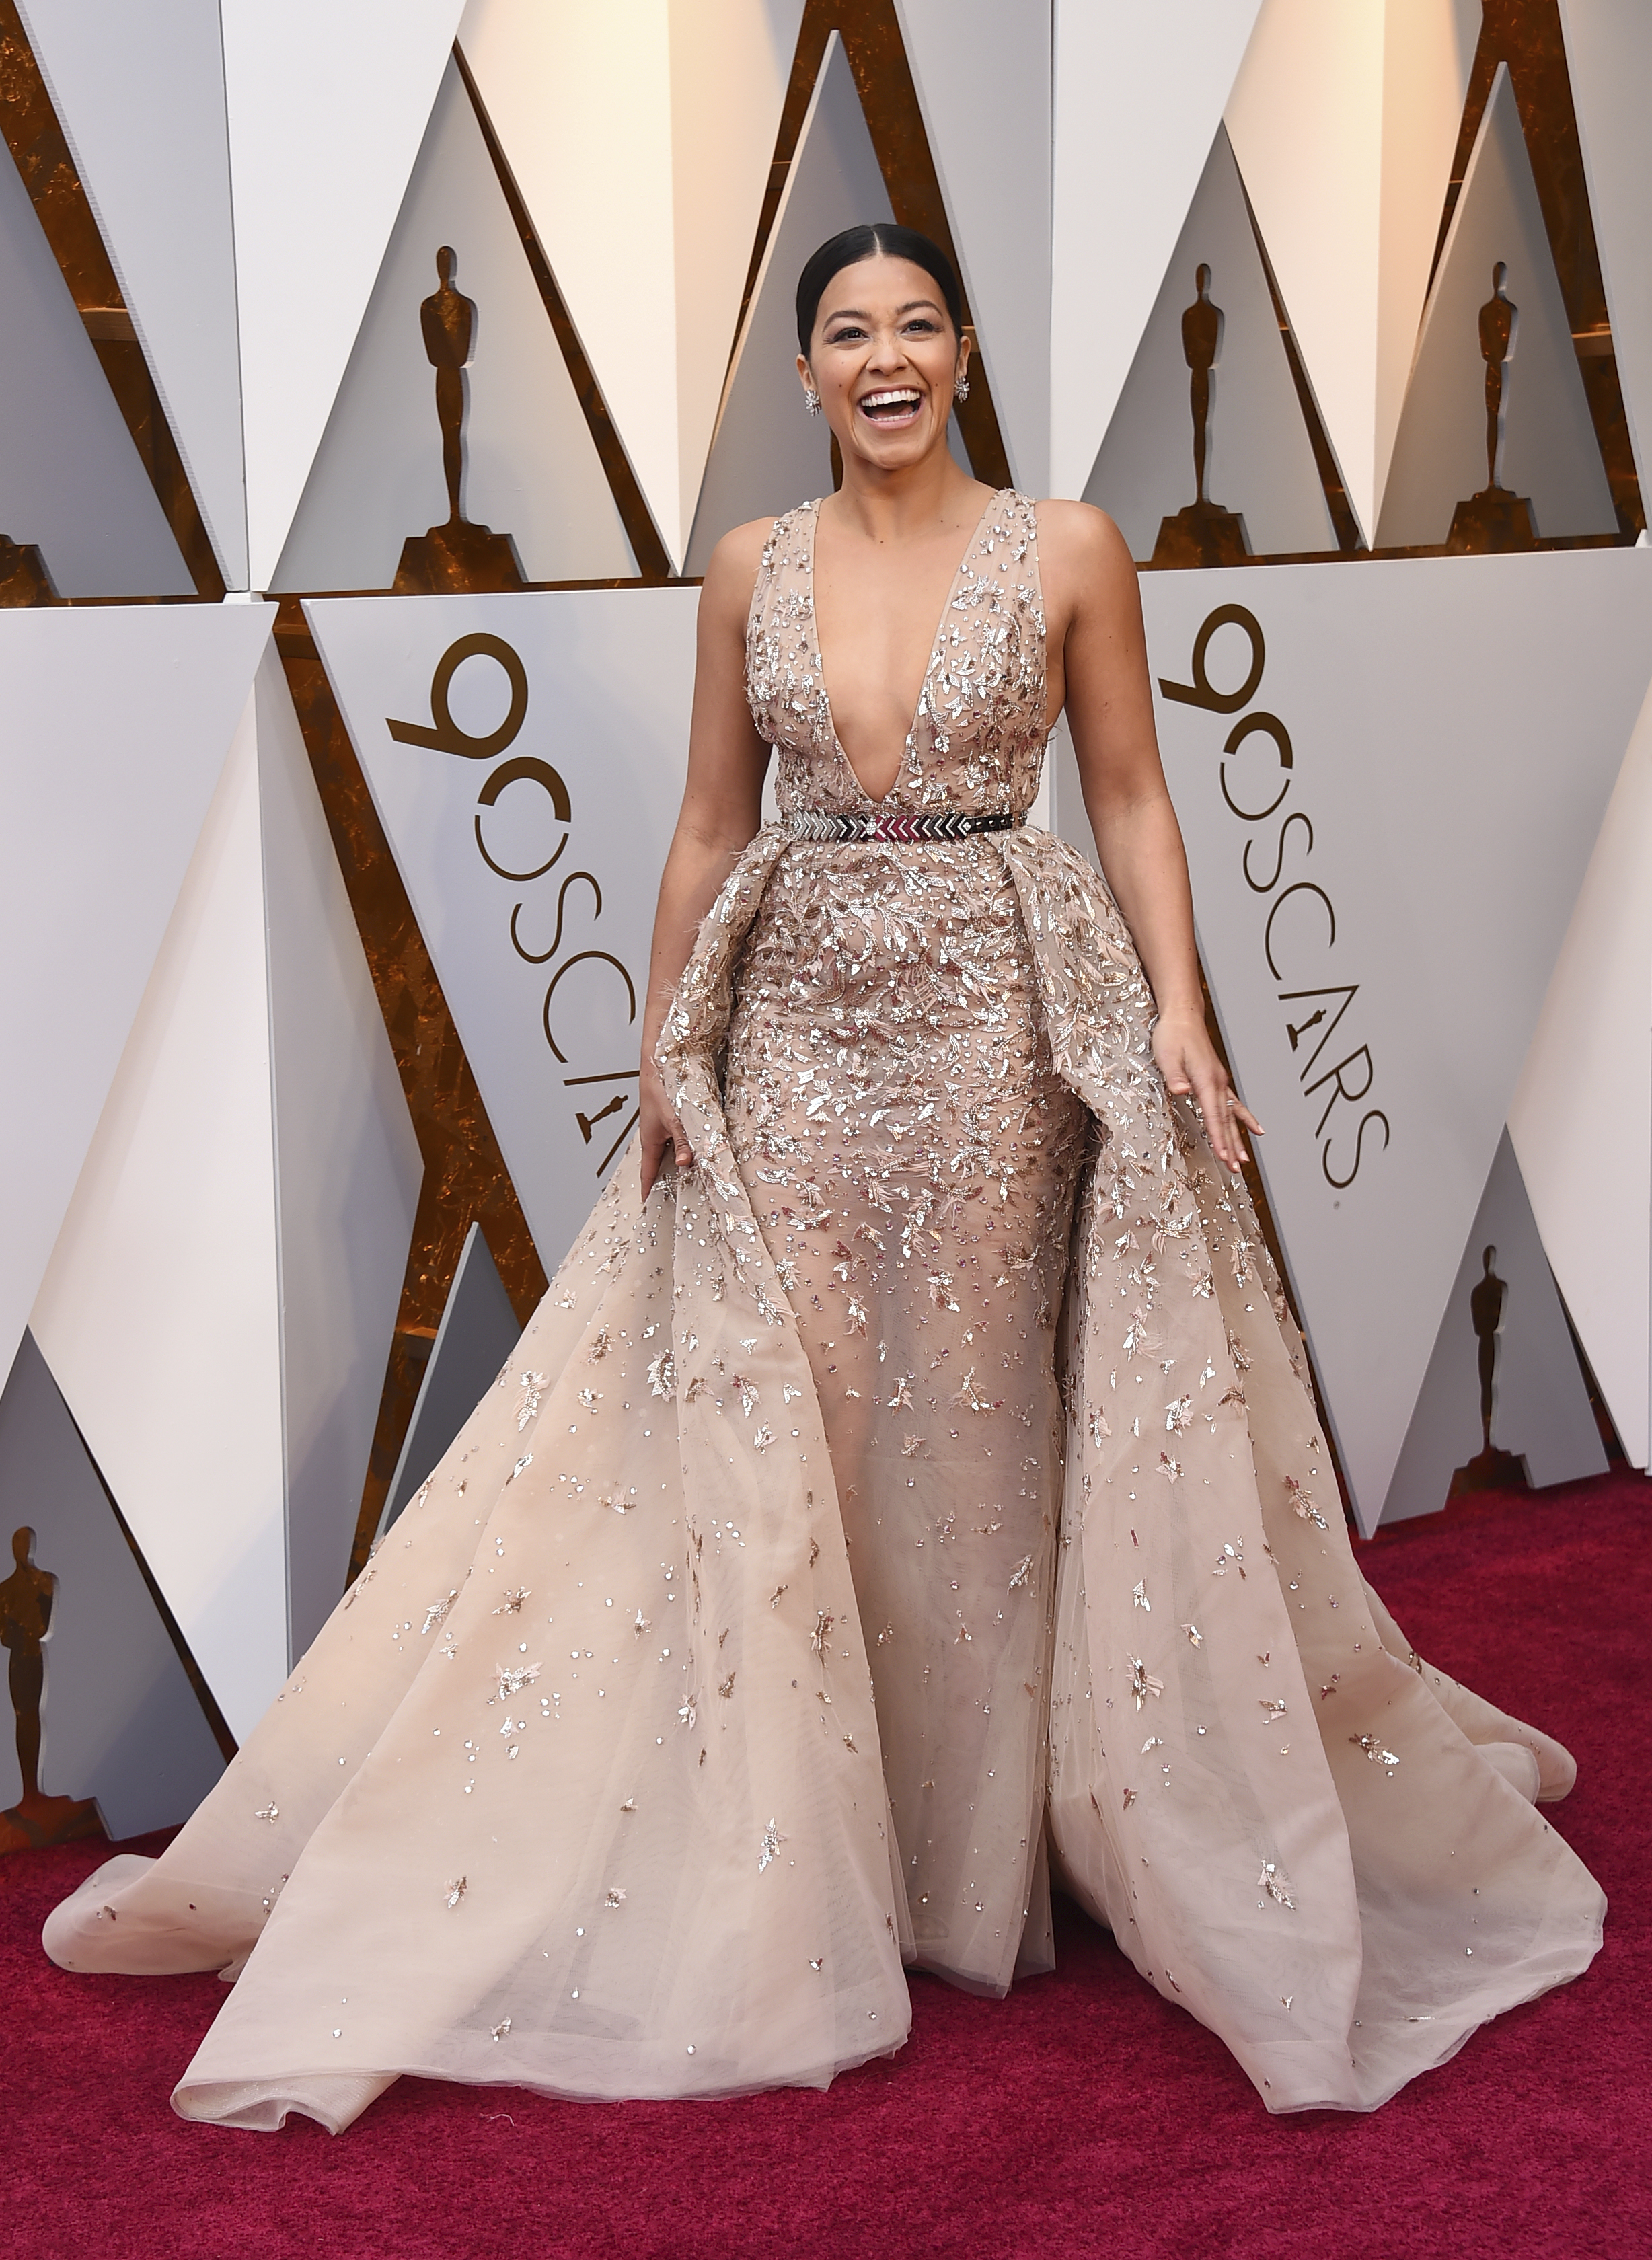 "<div class=""meta image-caption""><div class=""origin-logo origin-image none""><span>none</span></div><span class=""caption-text"">Gina Rodriguez arrives at the Oscars on Sunday, March 4, 2018, at the Dolby Theatre in Los Angeles. (Jordan Strauss/Invision/AP)</span></div>"